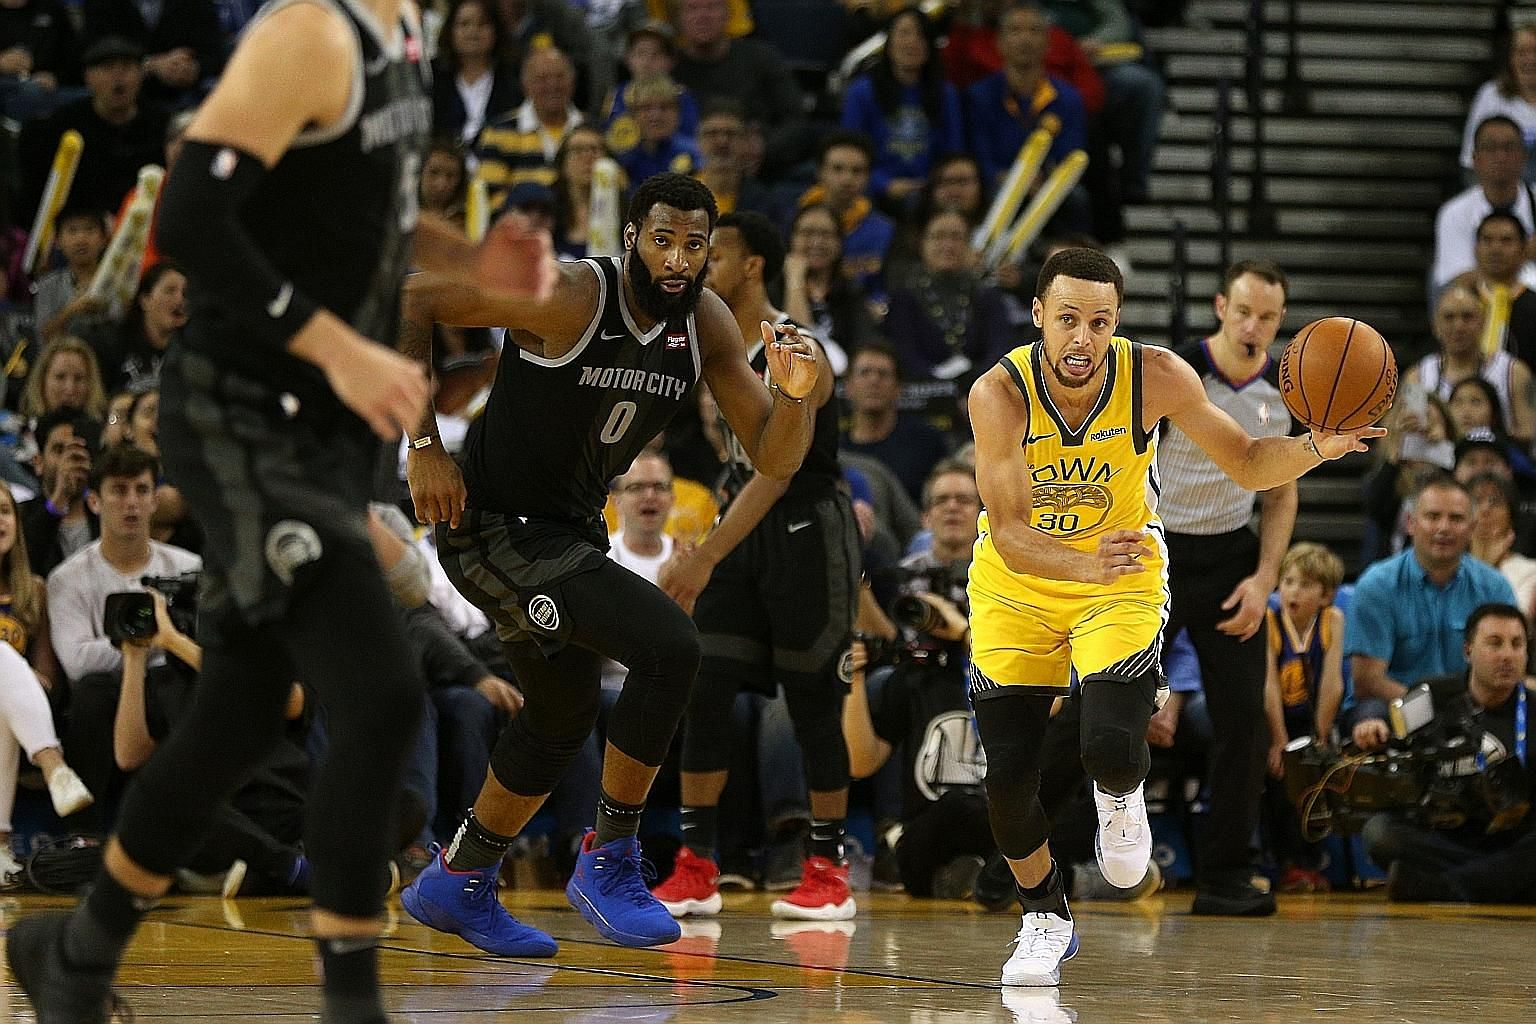 Golden State guard Stephen Curry, refreshed after resting on Saturday, was the game's top scorer as his team beat Detroit 121-114 at home.